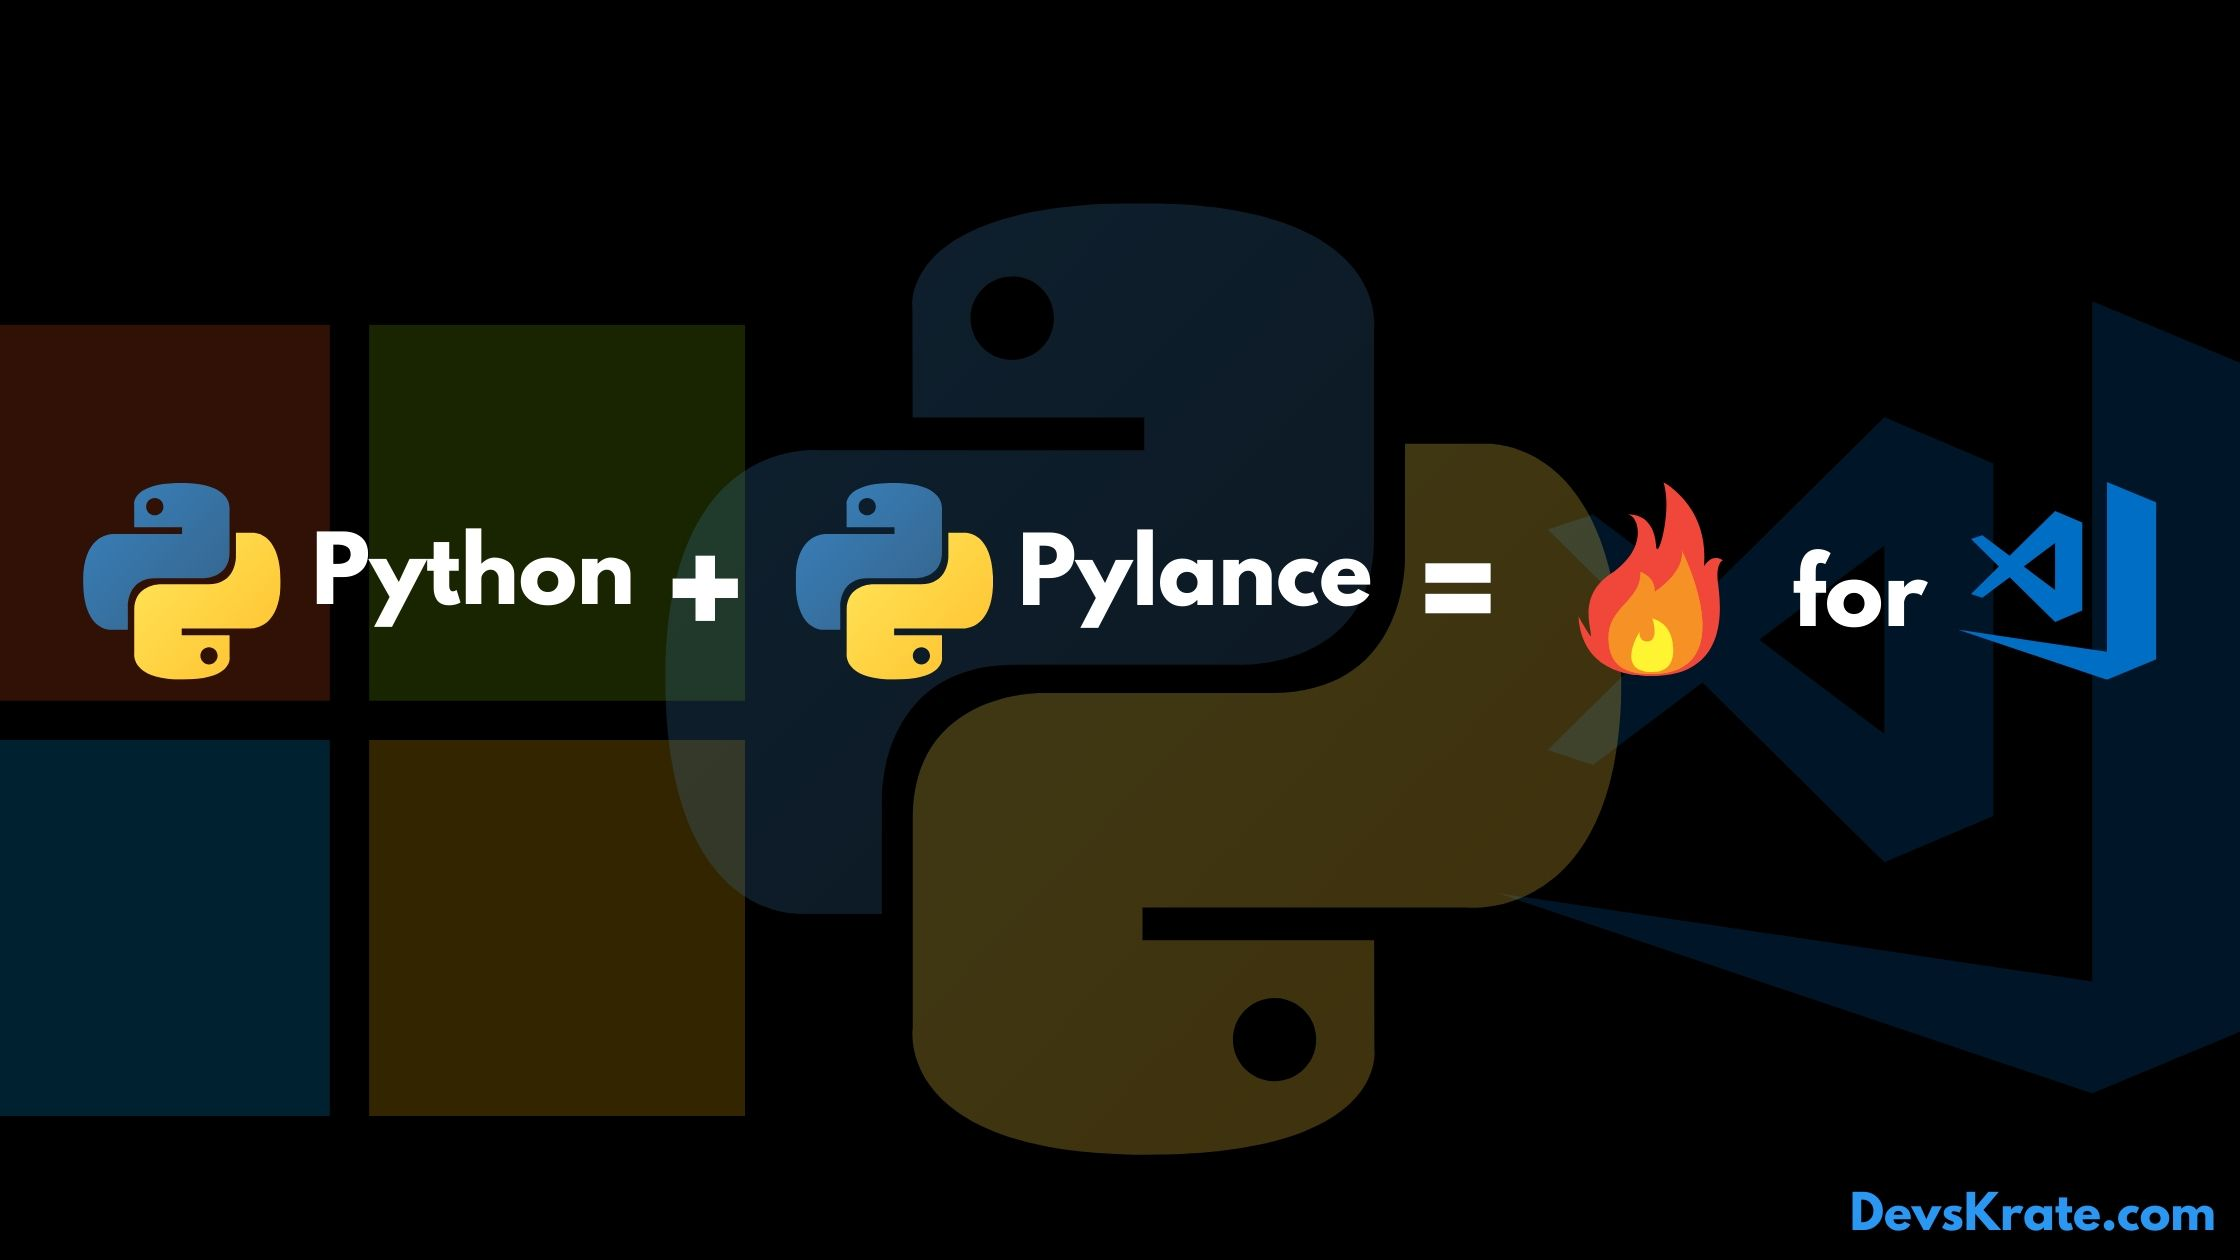 Microsoft introduces Pylance to improve Python on VS Code